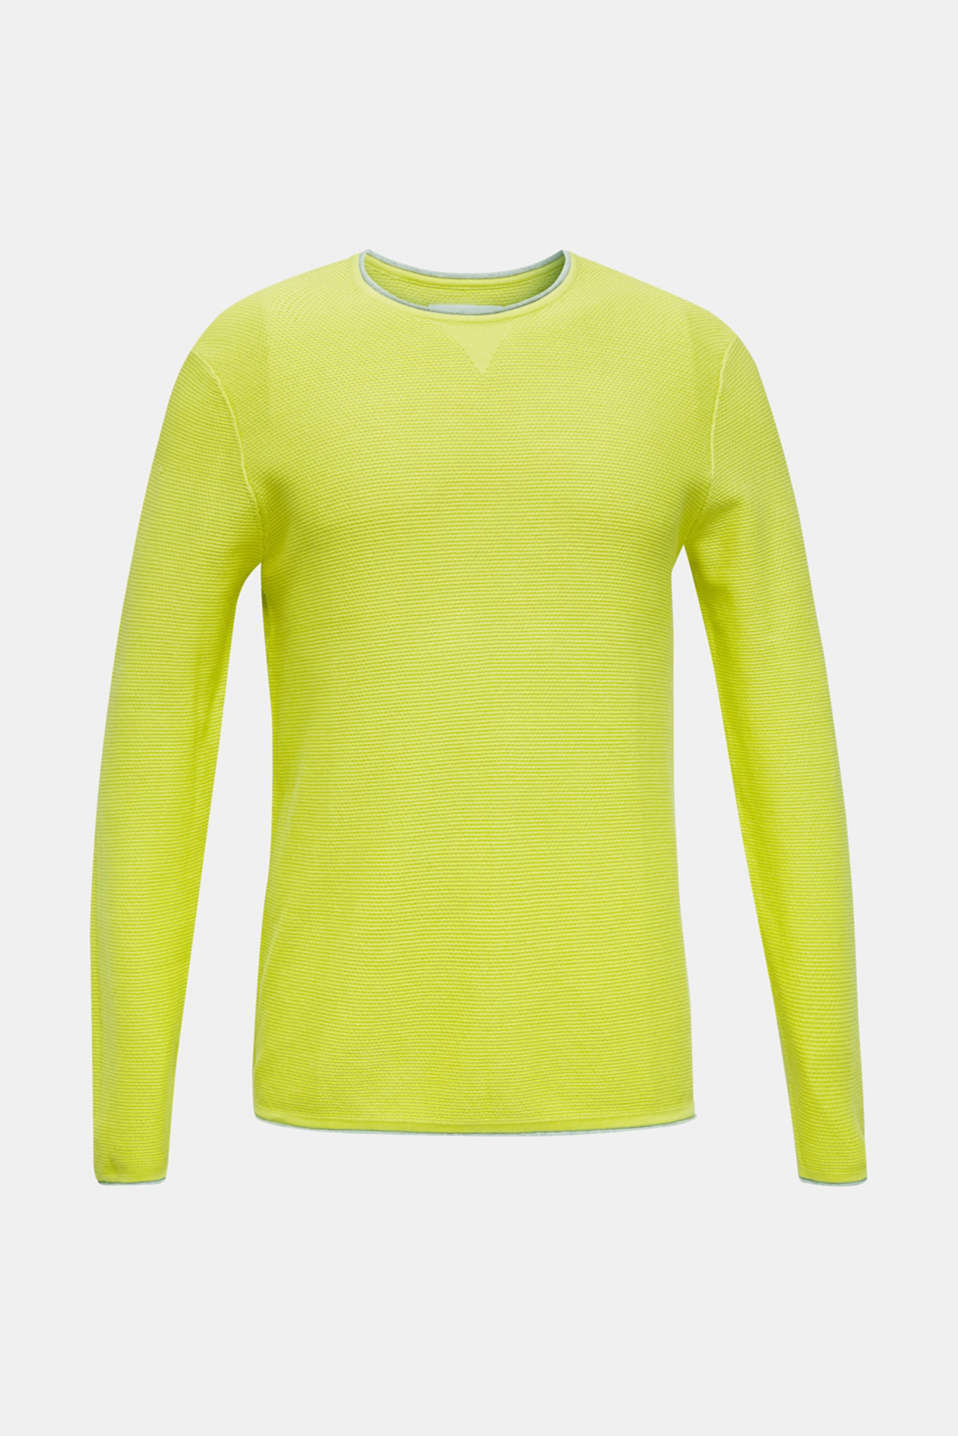 Textured jumper made of 100% cotton, BRIGHT YELLOW, detail image number 5